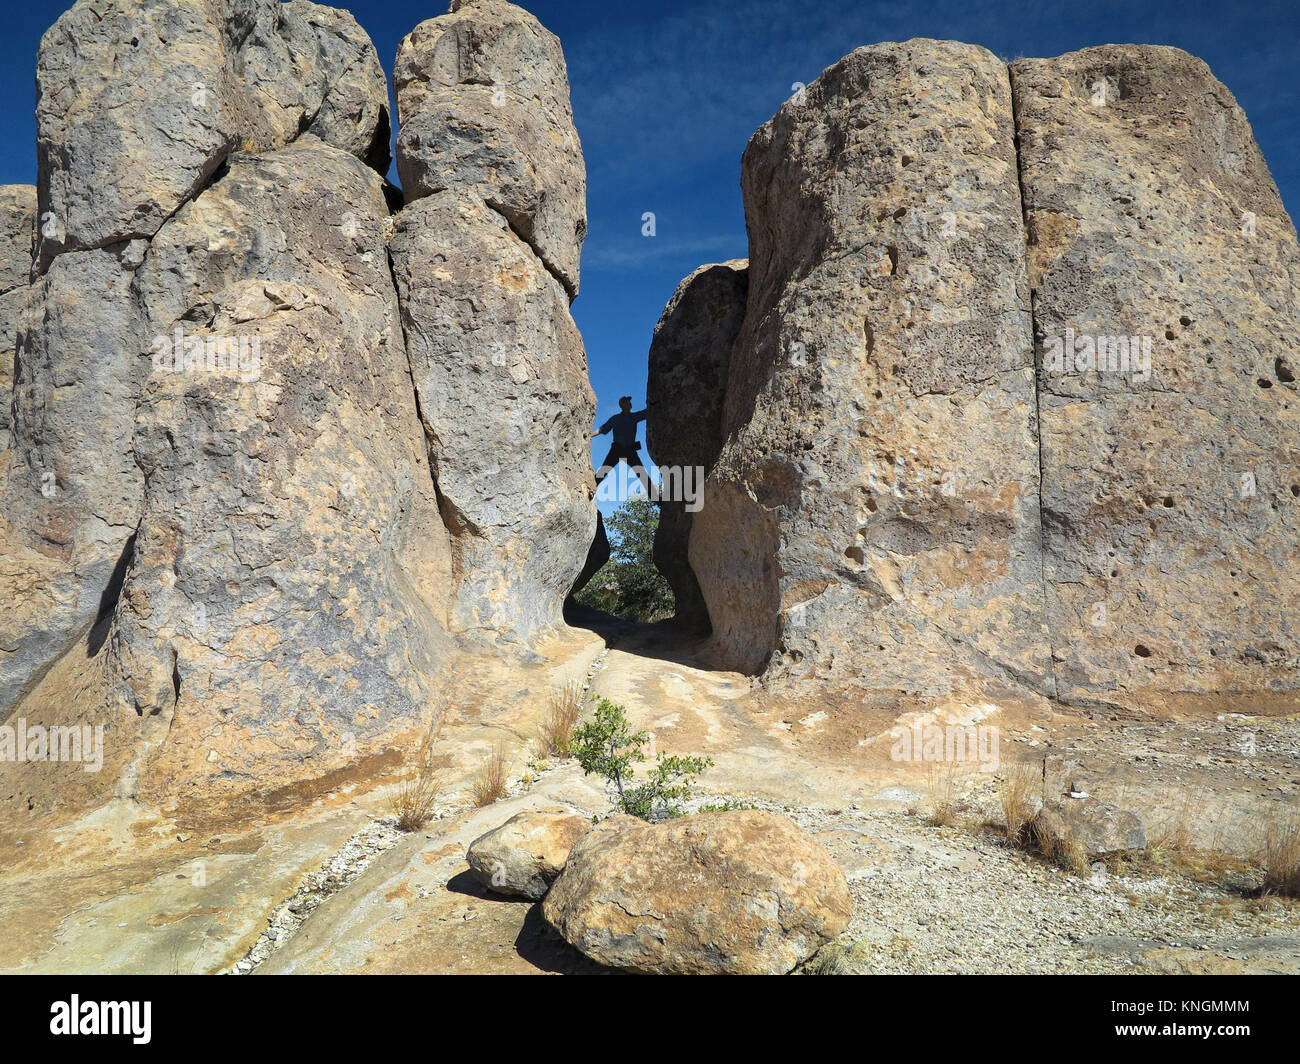 Geological formations at City of Rocks, NM. Climbing between a rock and a hard place. - Stock Image